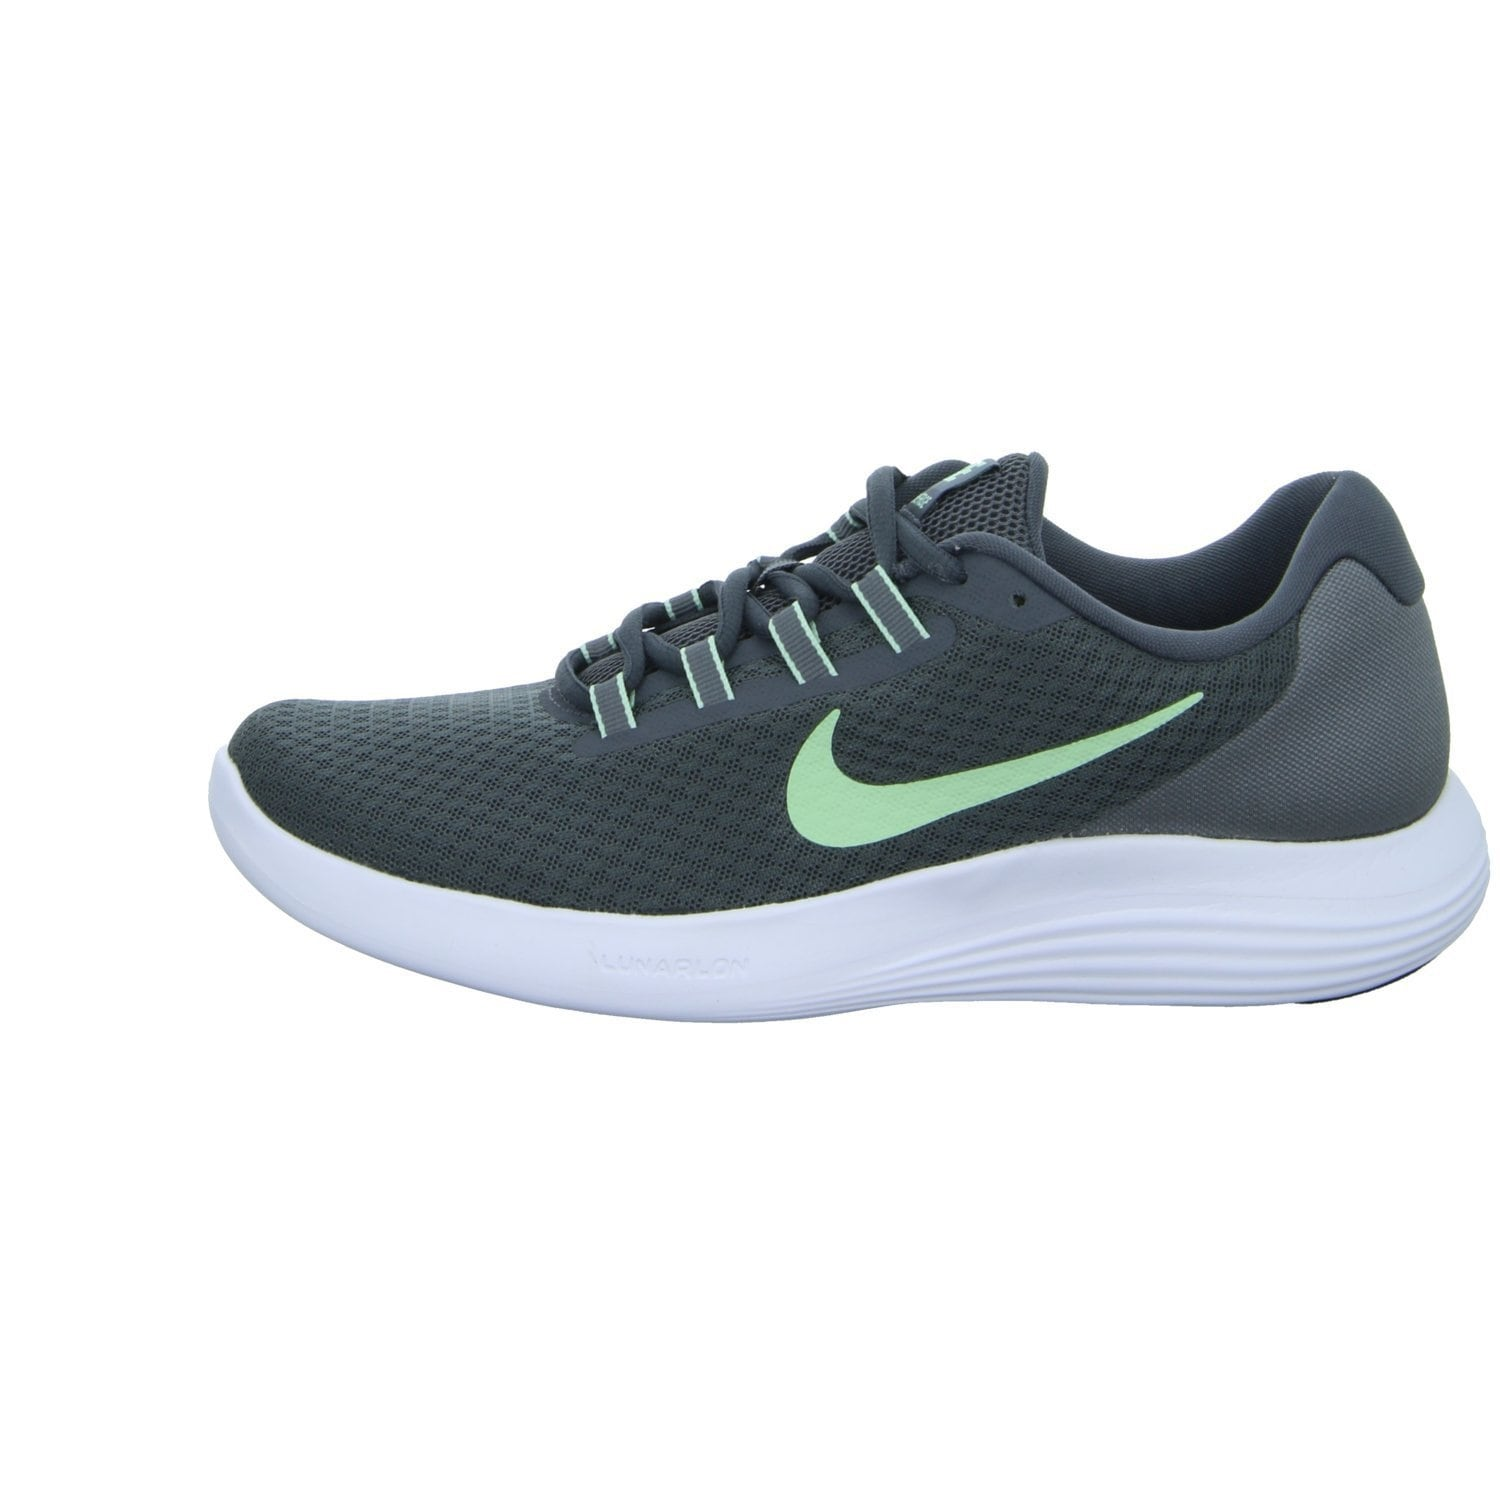 bbee72eacccdc7 Shop Nike Lunar Converge Dark Grey/Fresh Mint/Cool Grey/White Women's Shoes  - Free Shipping Today - Overstock - 18275664